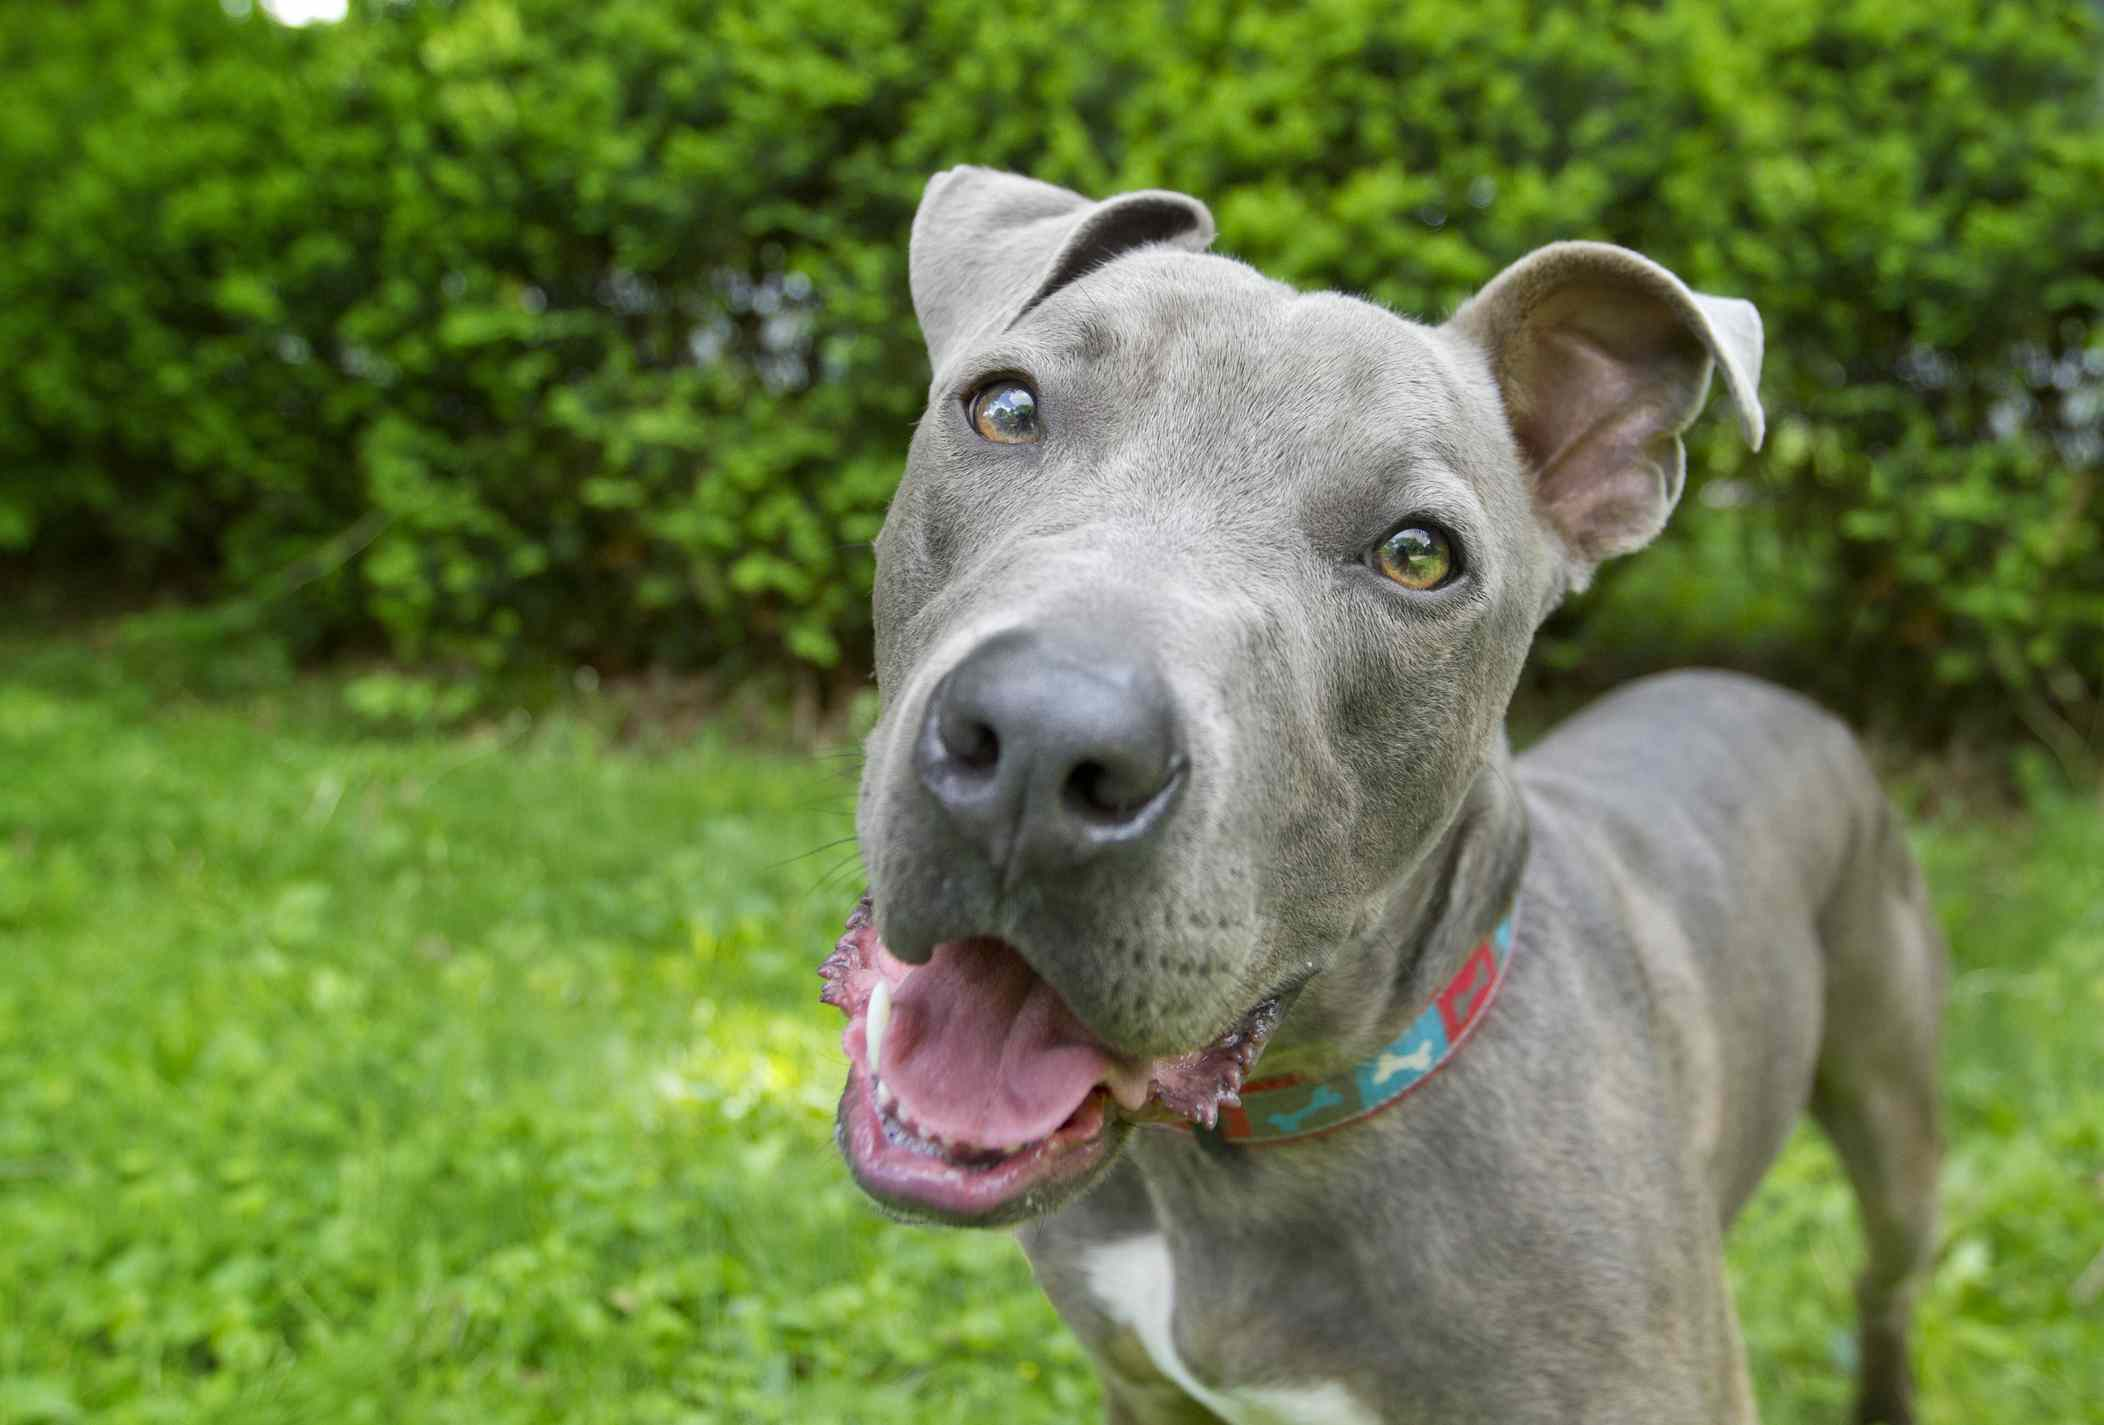 American staffordshire terrier with blue coat